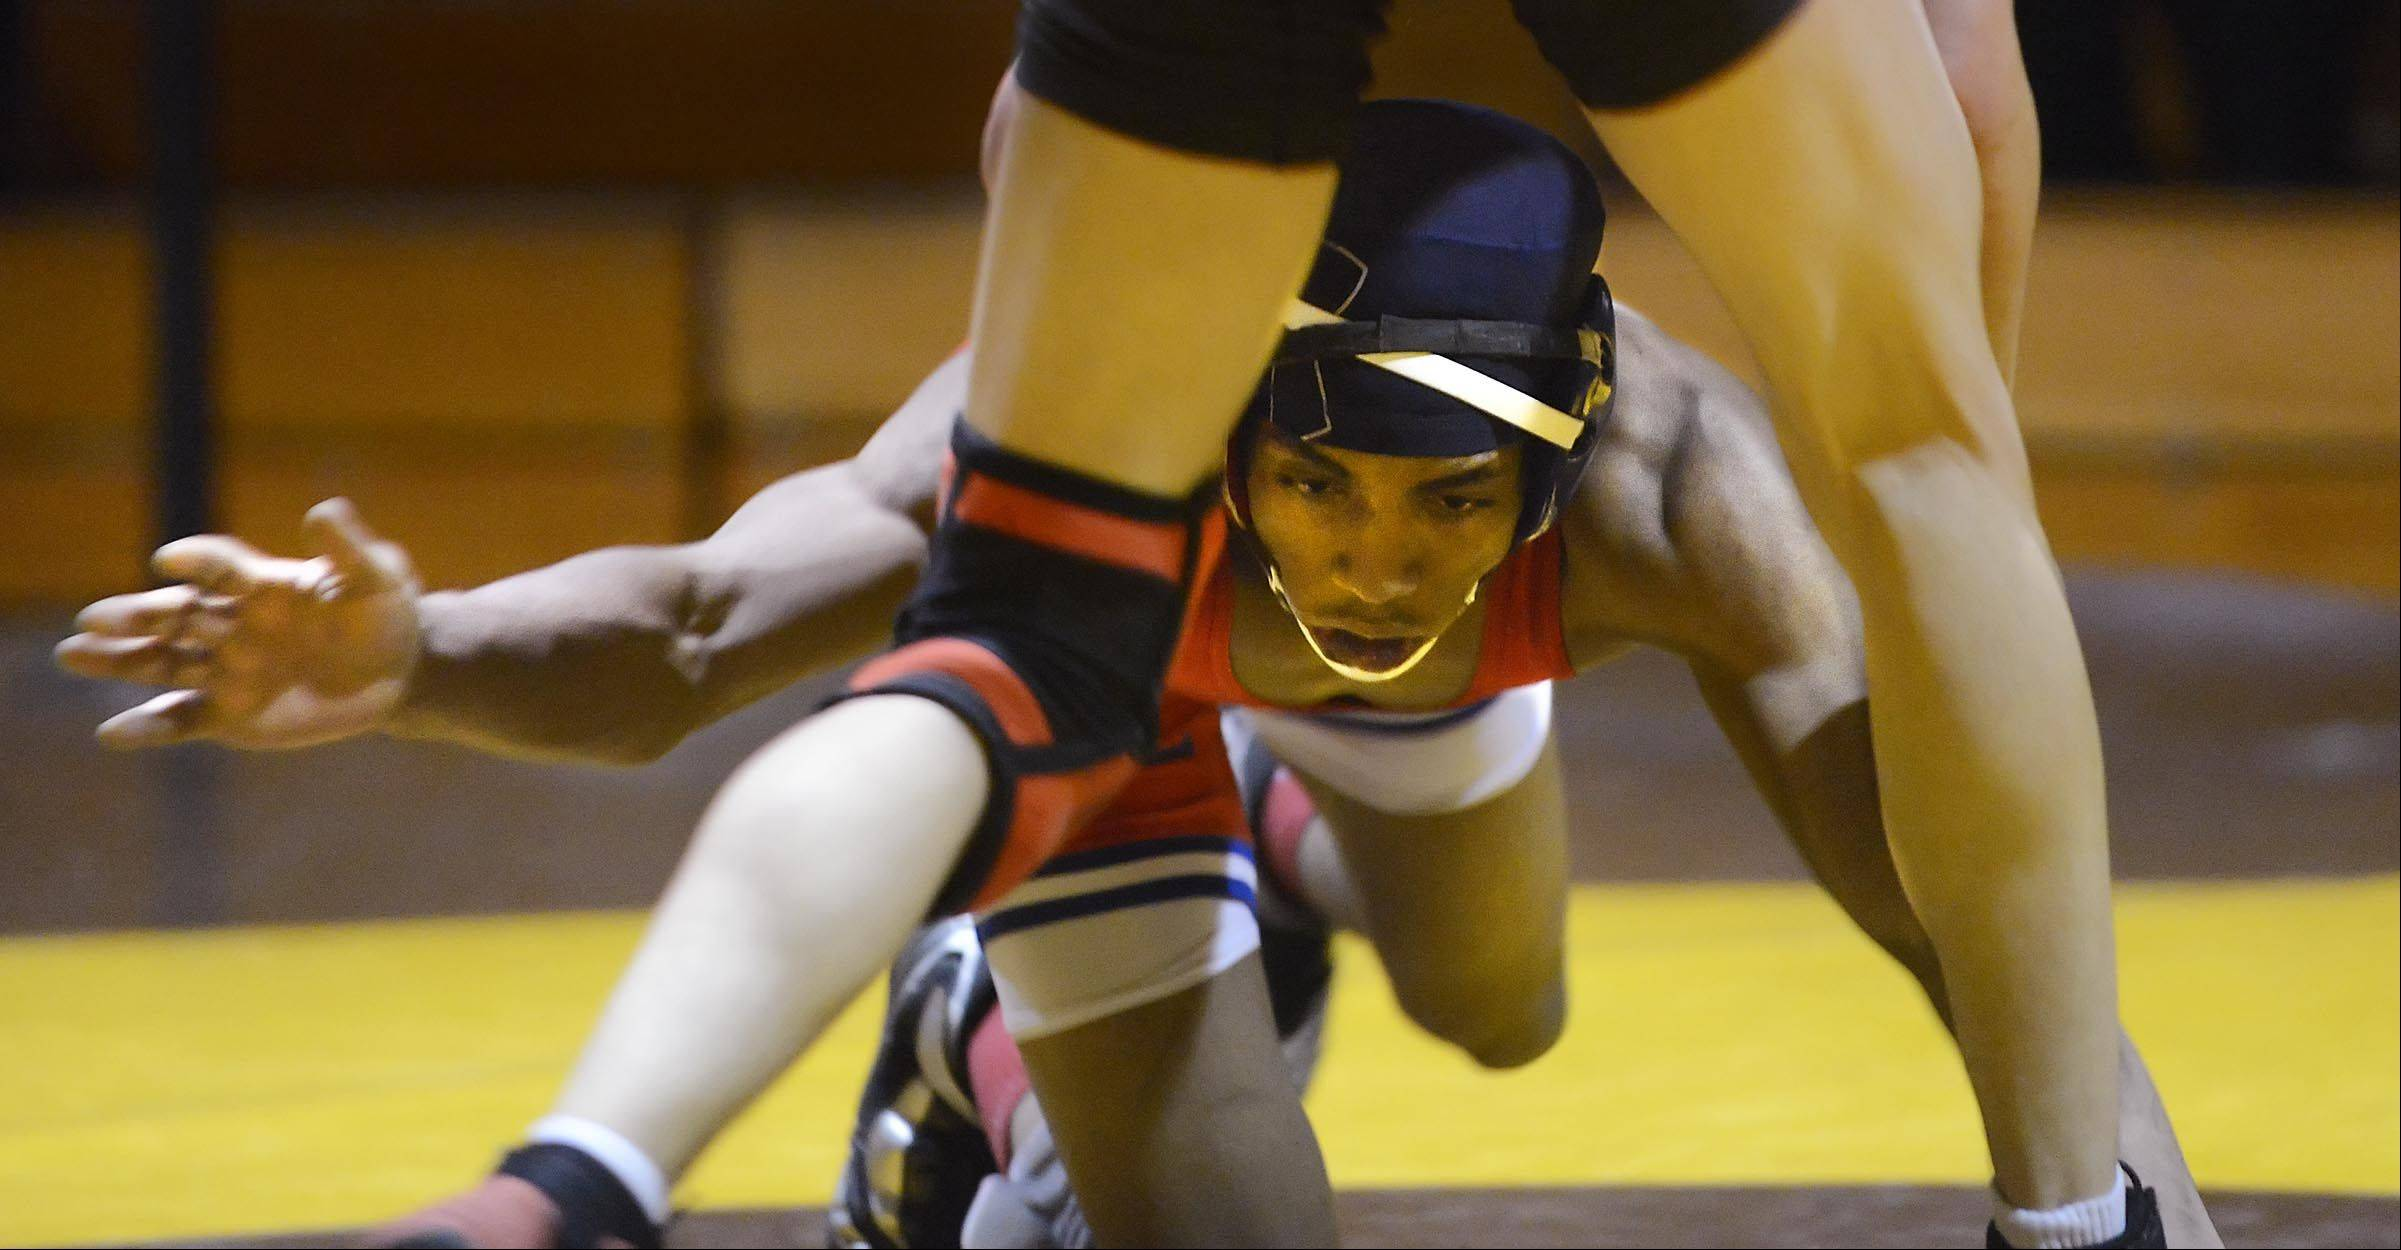 Dundee-Crown's Jequann Flynn shoots to take down Jacobs' Jacob Sabella in their 132-pound match Thursday in Algonquin.